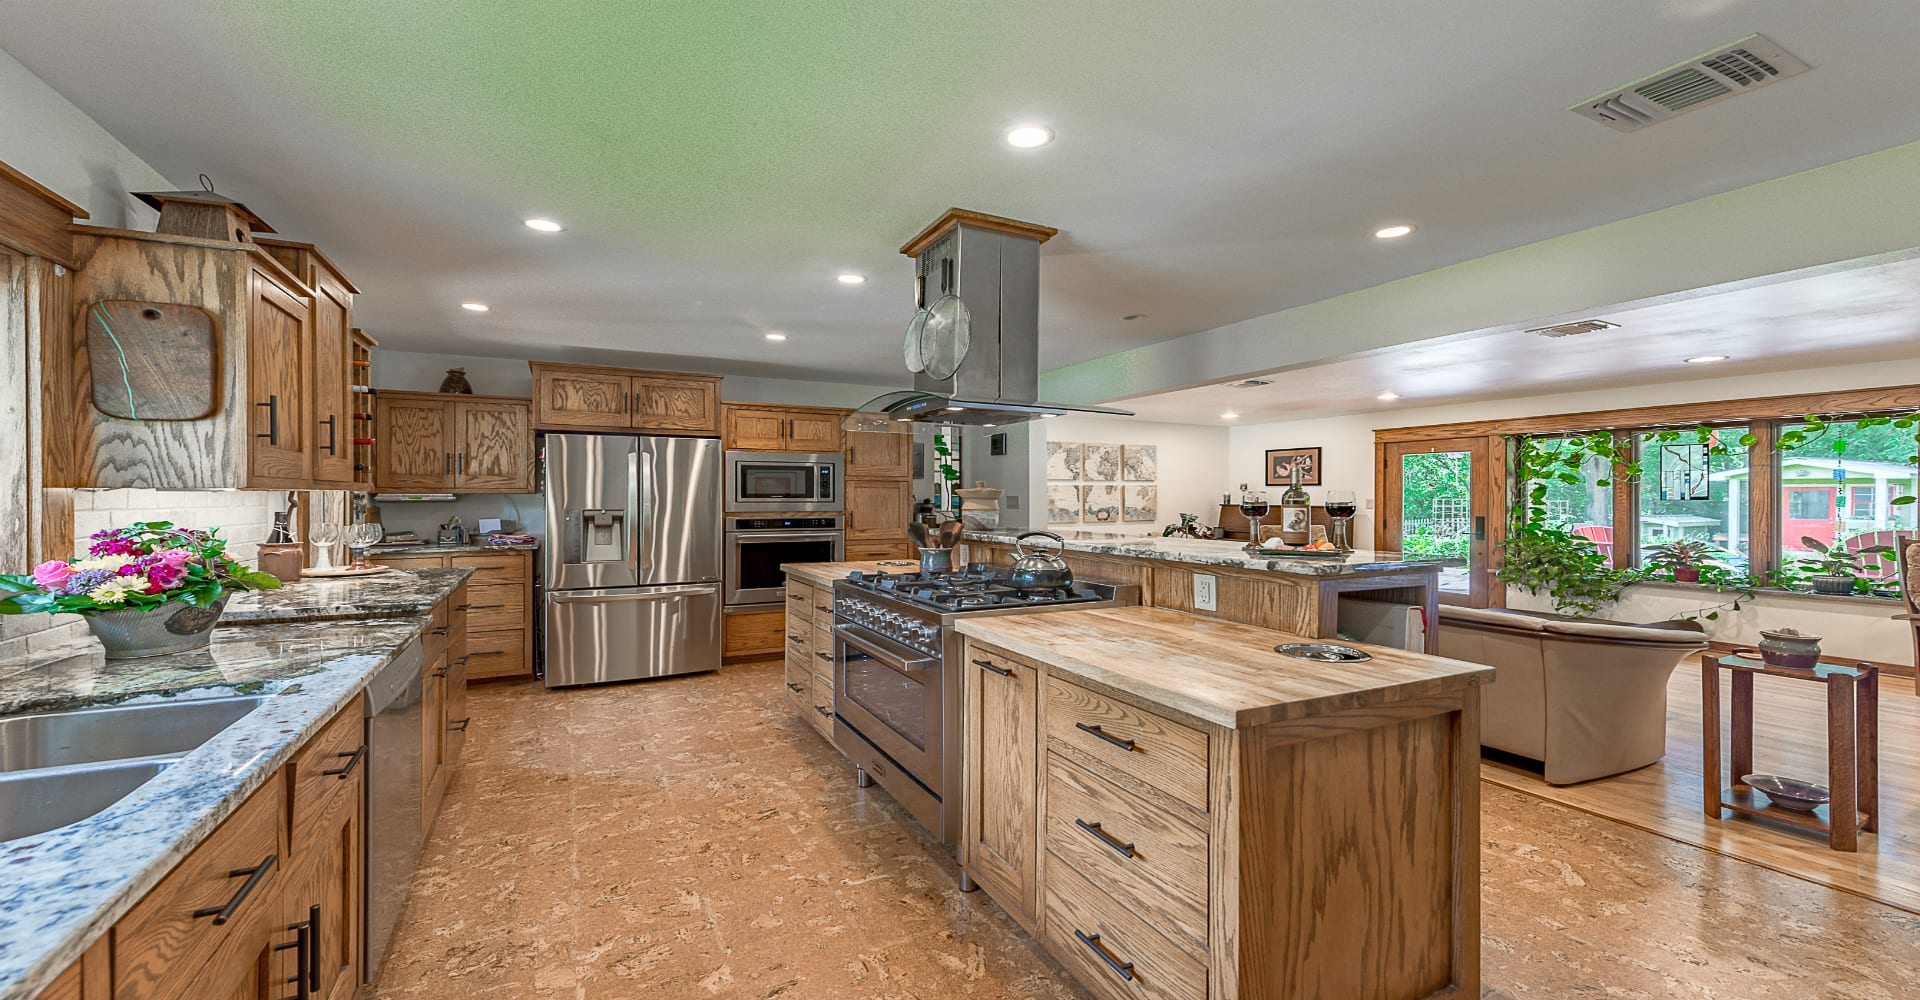 Kitchen Remodel | Preparing Your Home for Remodeling